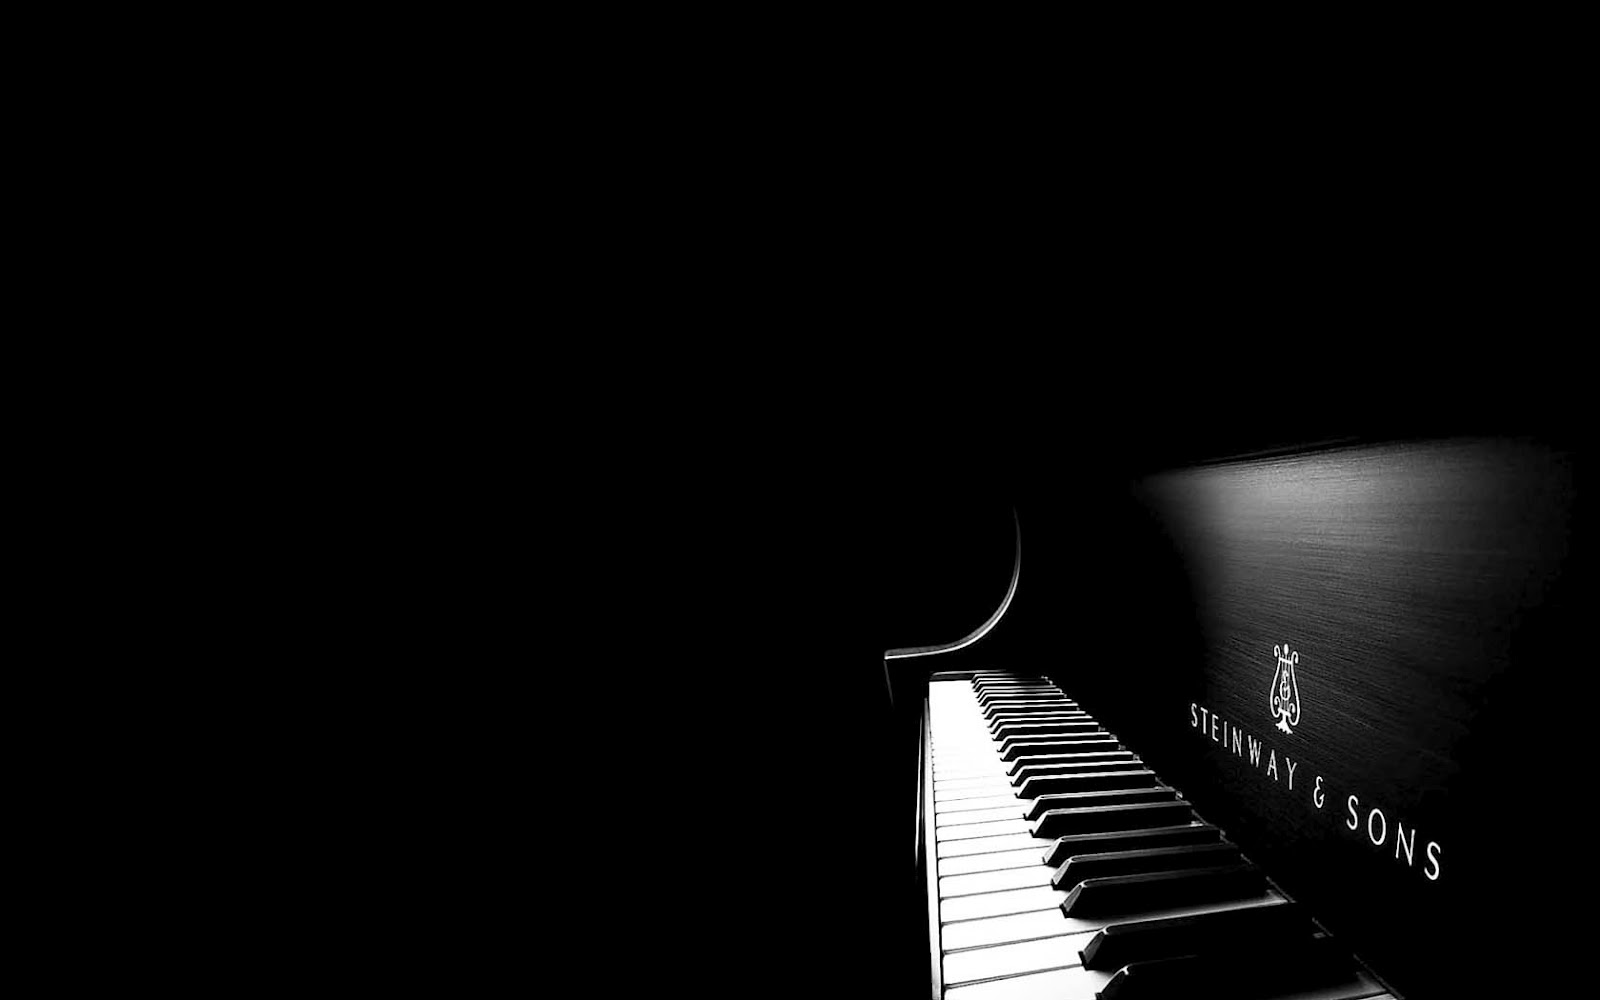 http://3.bp.blogspot.com/-TGr8kElo54Q/UGhDYR6clEI/AAAAAAAAE8g/vLQv82v4Rqc/s1600/Steinway-and-Sons-Piano-Close-Up-Psupero-HD-Wallpaper--Vvallpaper.Net.jpg